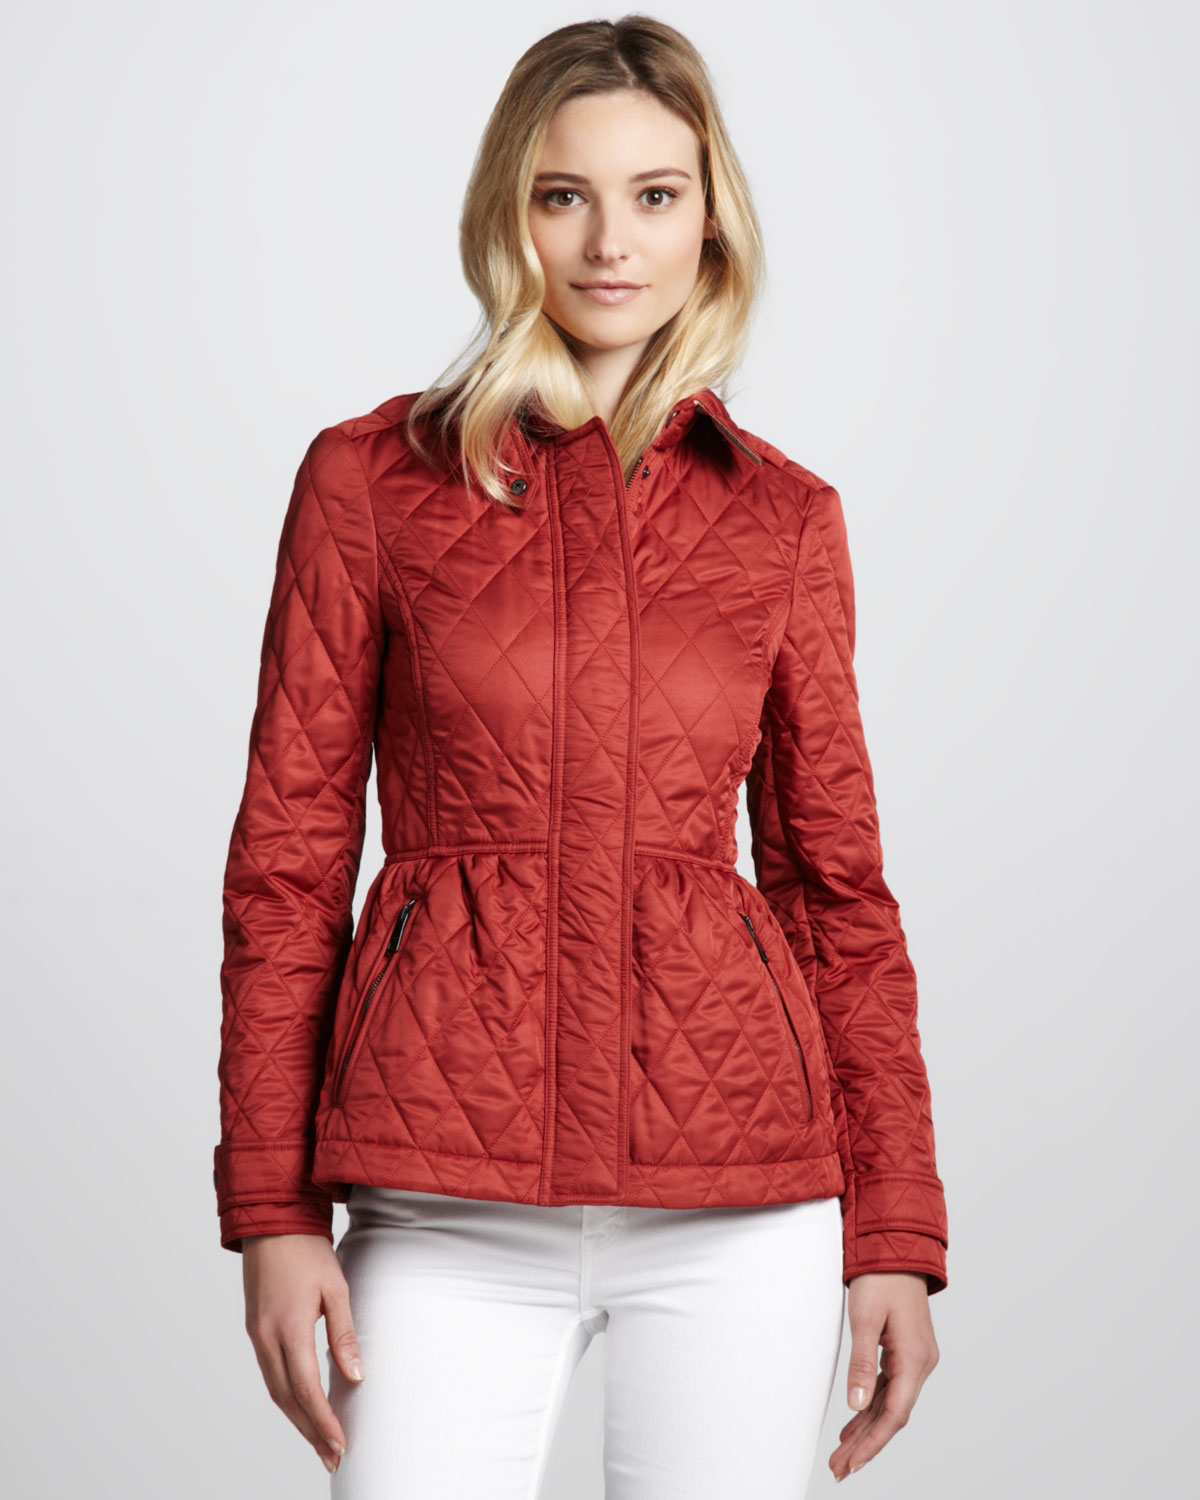 Lyst - Burberry brit Quilted Cinchwast Jacket Copper Pink in Pink : burberry brit jacket quilted - Adamdwight.com